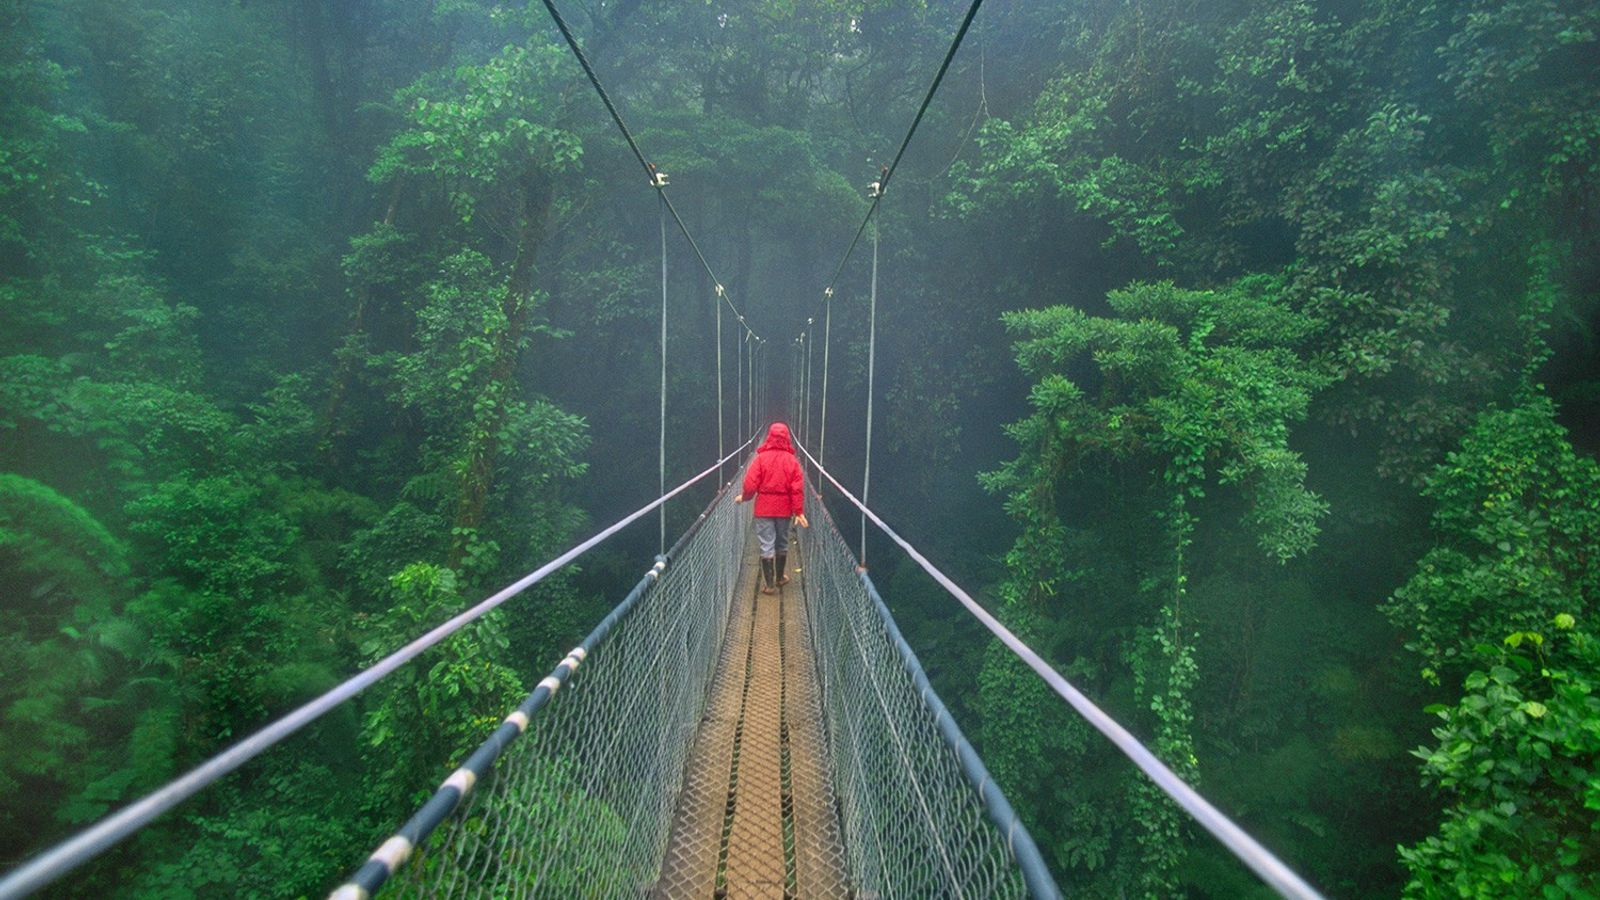 Een loopbrug door de jungle van Costa Rica.